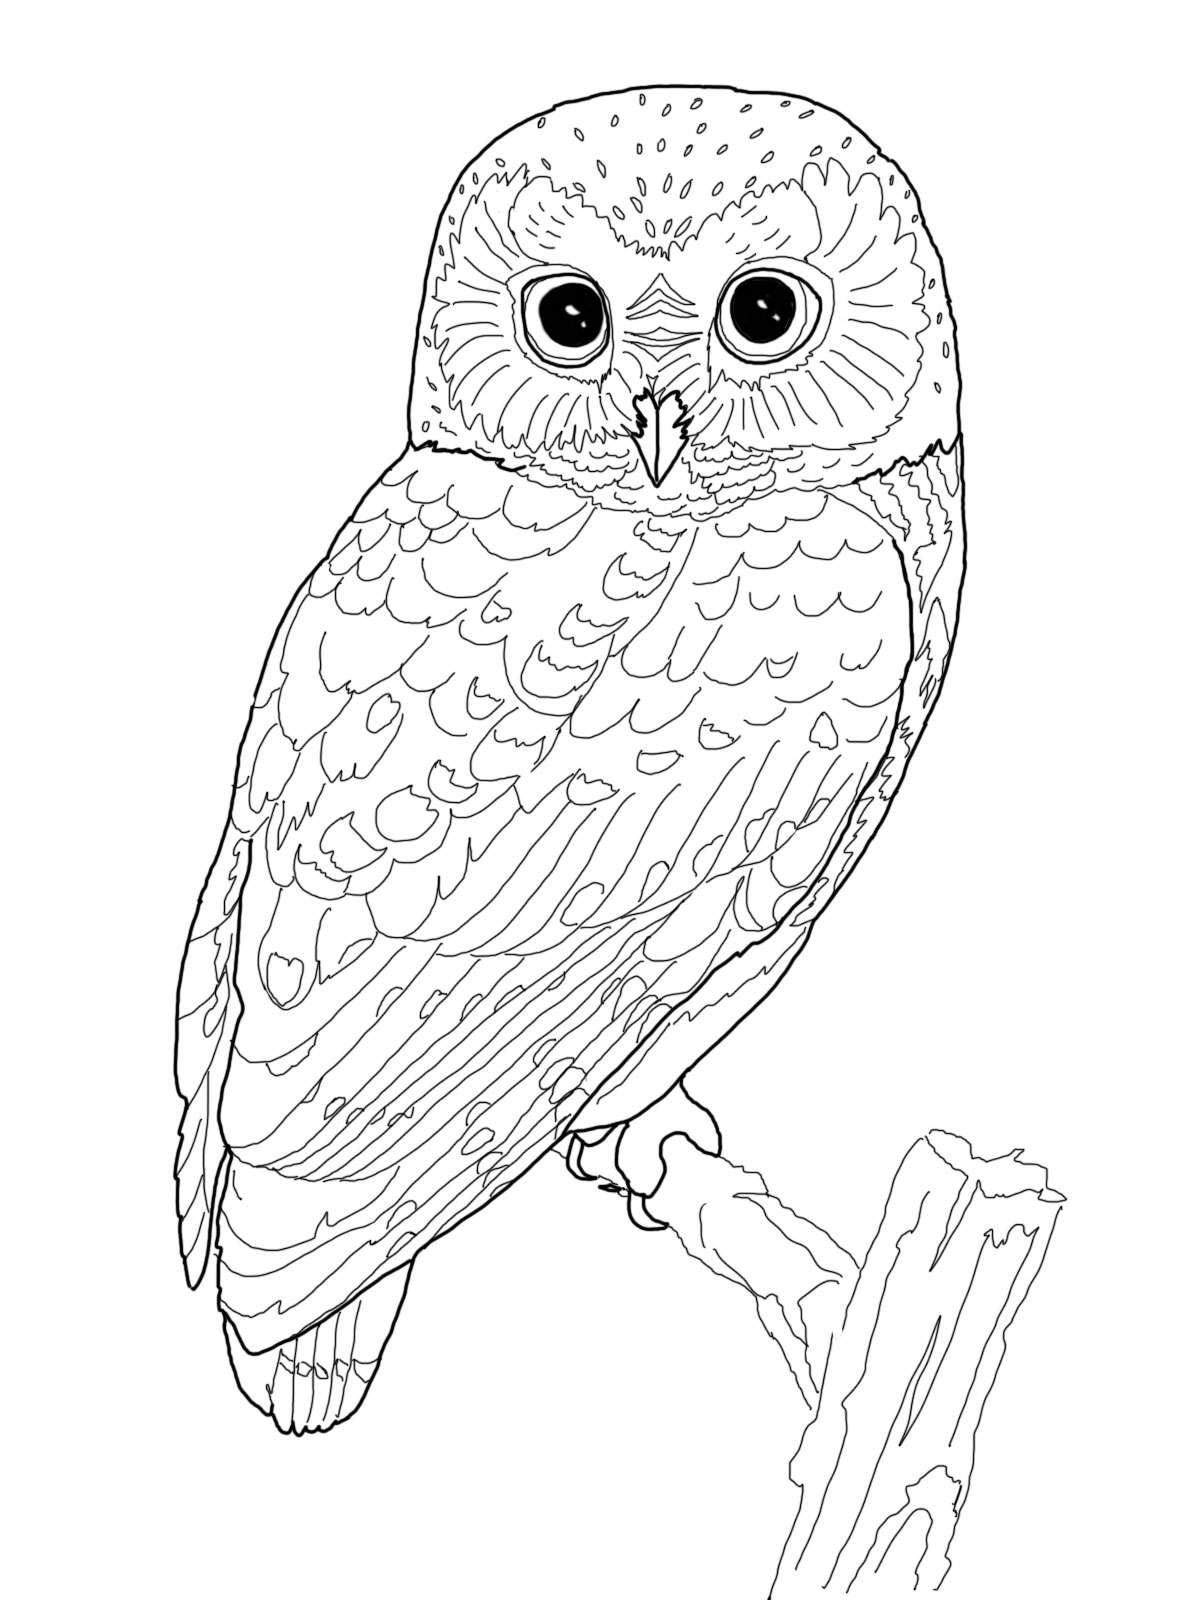 coloring pictures of owls owl coloring pages for adults free detailed owl coloring owls pictures of coloring